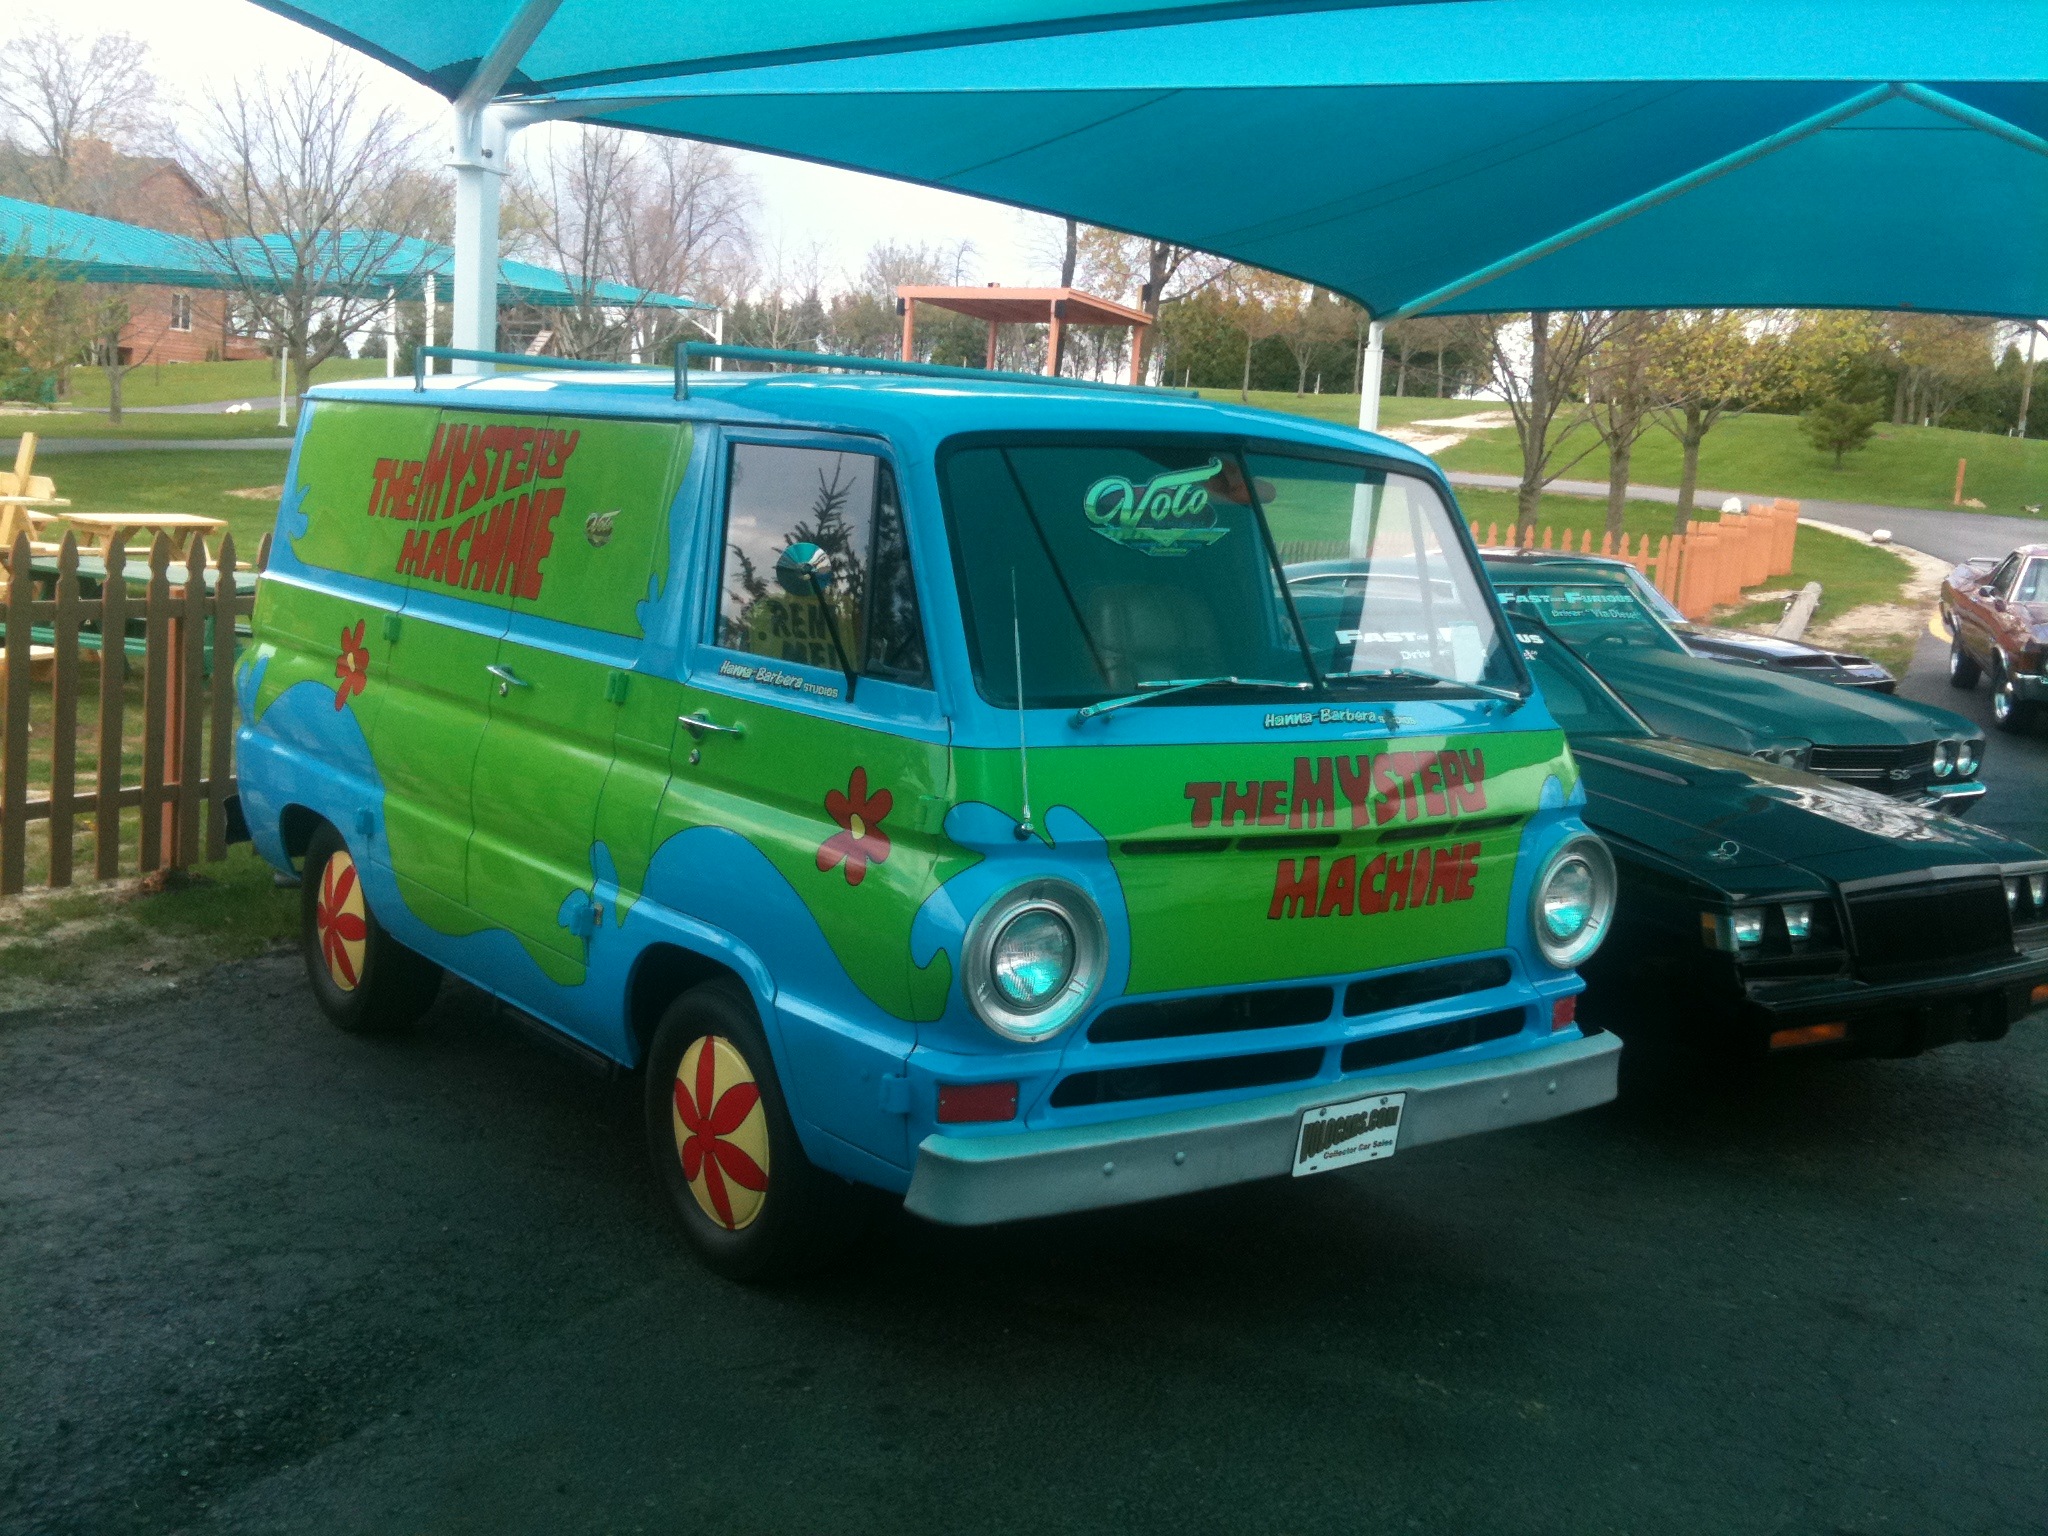 Wanna Own The Mystery Machine?